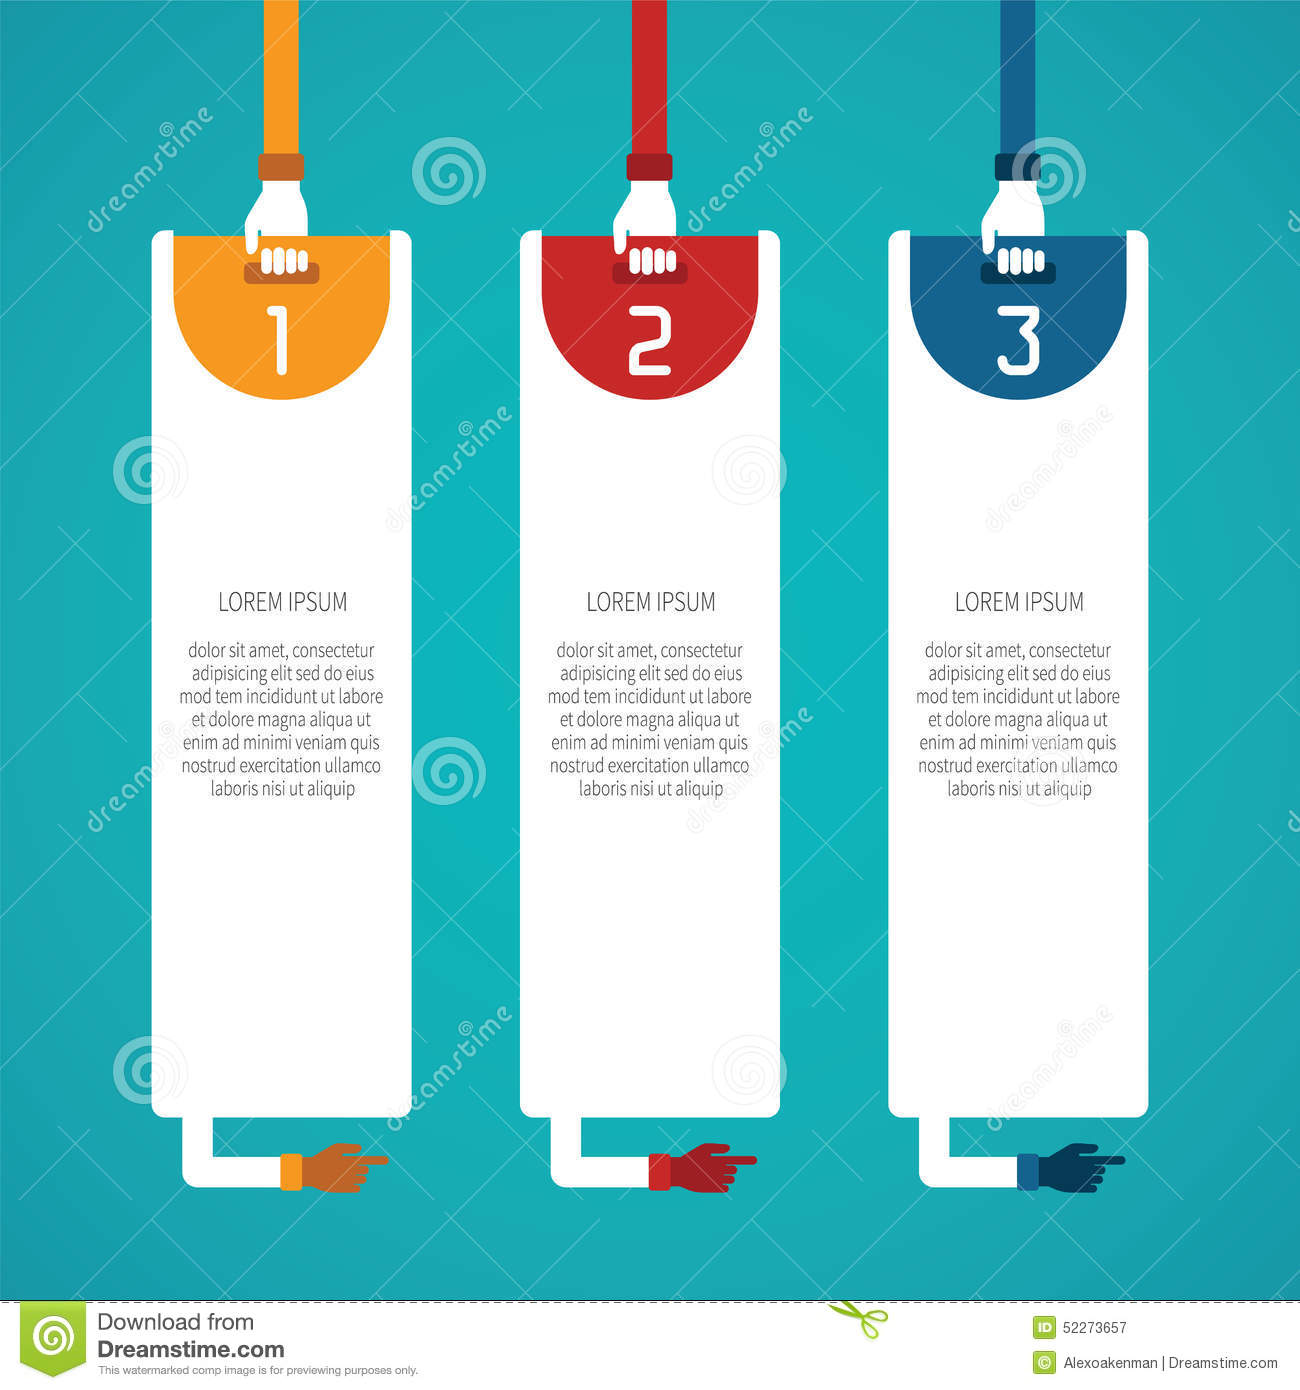 Abstract Vector 3 Steps Infographic Template In Flat Style